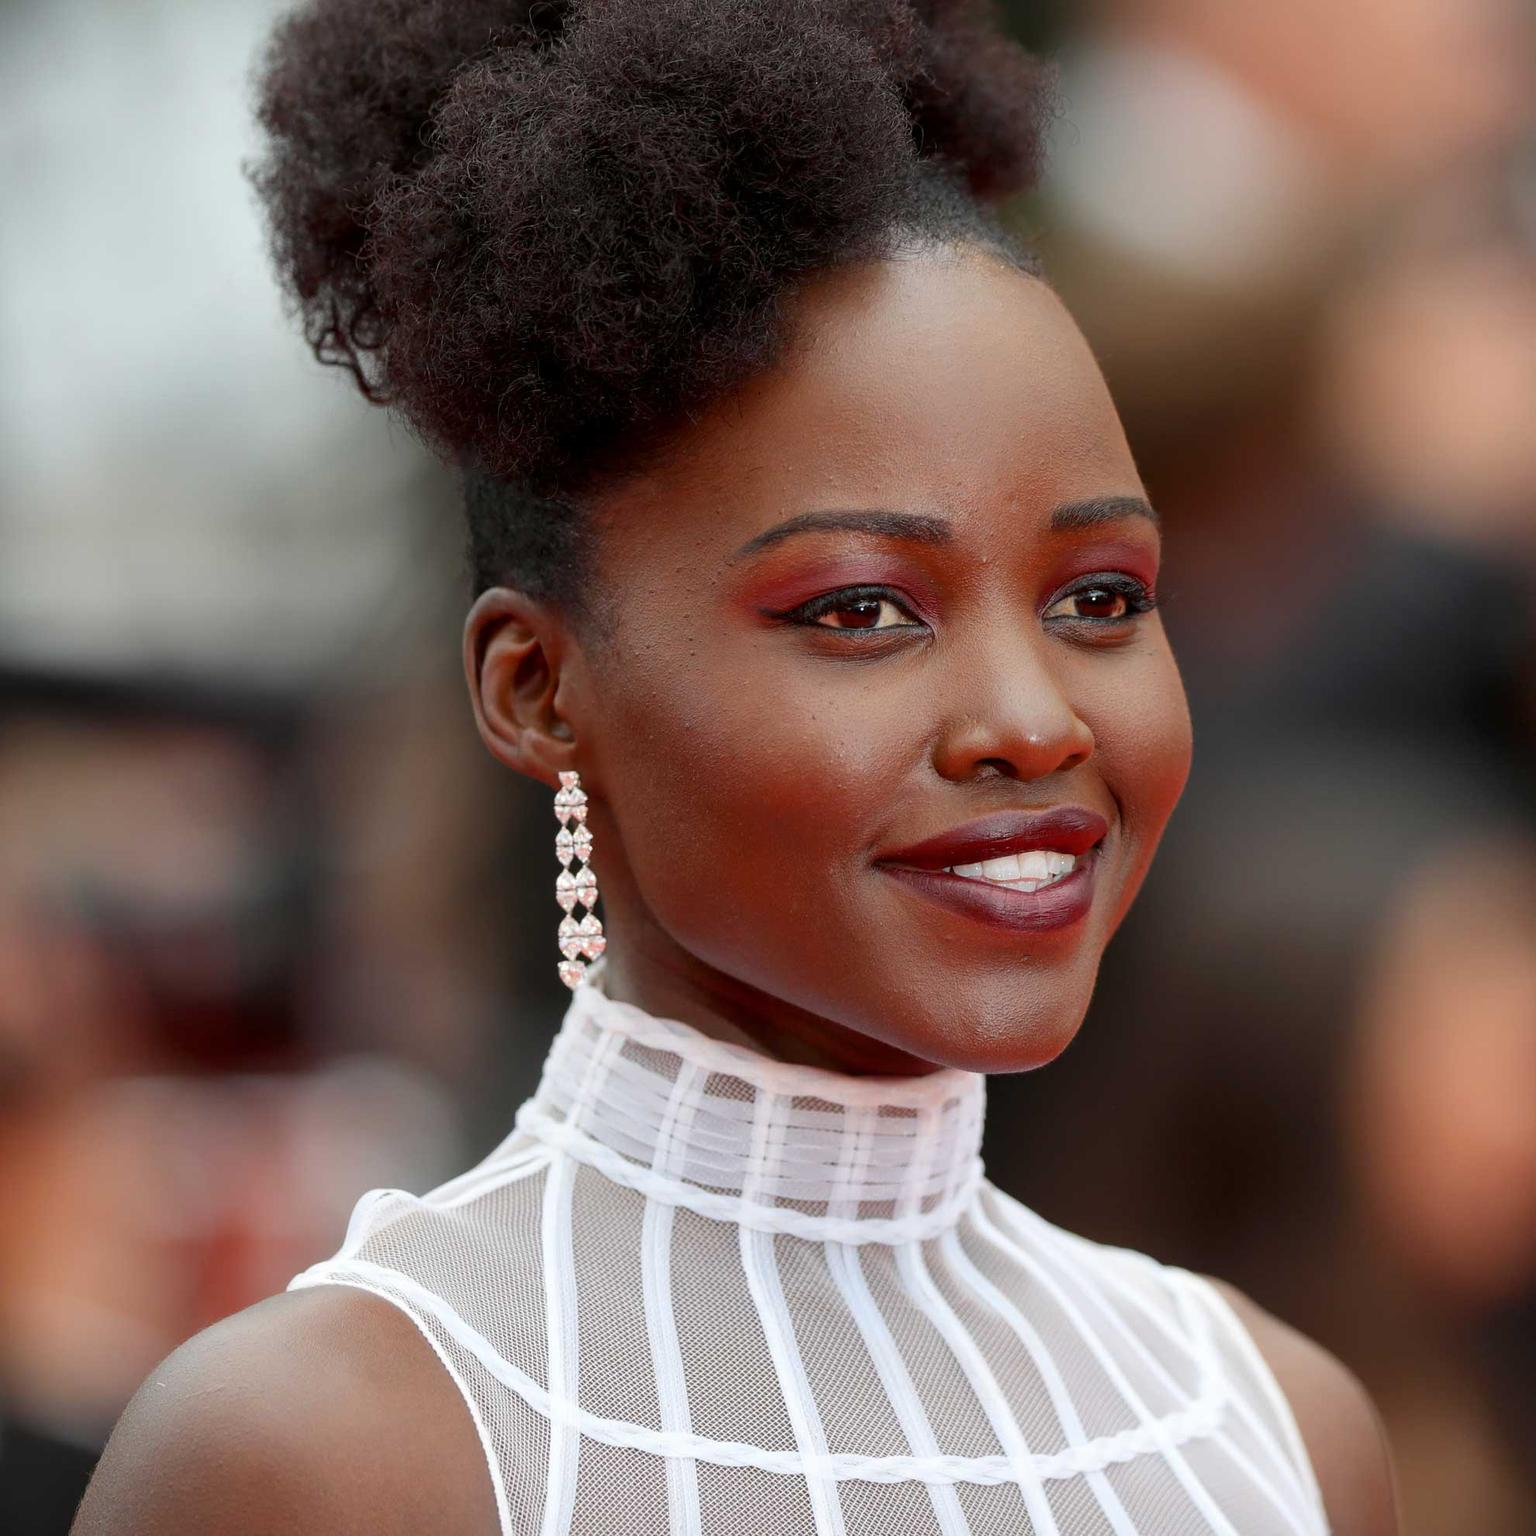 Lupita-Nyonga-in-Chopard-diamonds-at-Cannes-Film-Festival